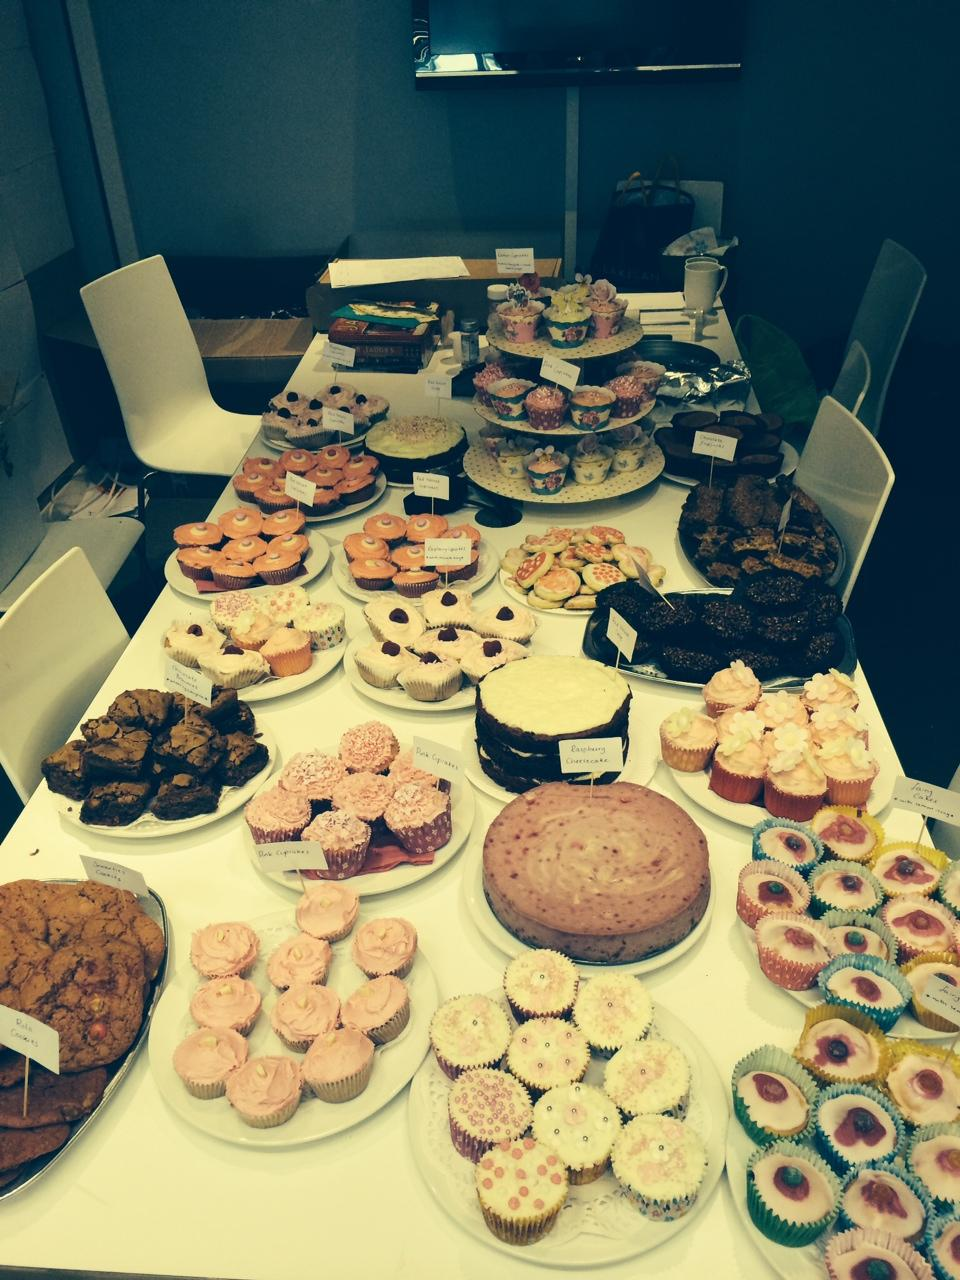 A very successful bake sale for @asdatickledpink... isn't this table a glorious sight?! #vccppink http://t.co/LwEhK36sch